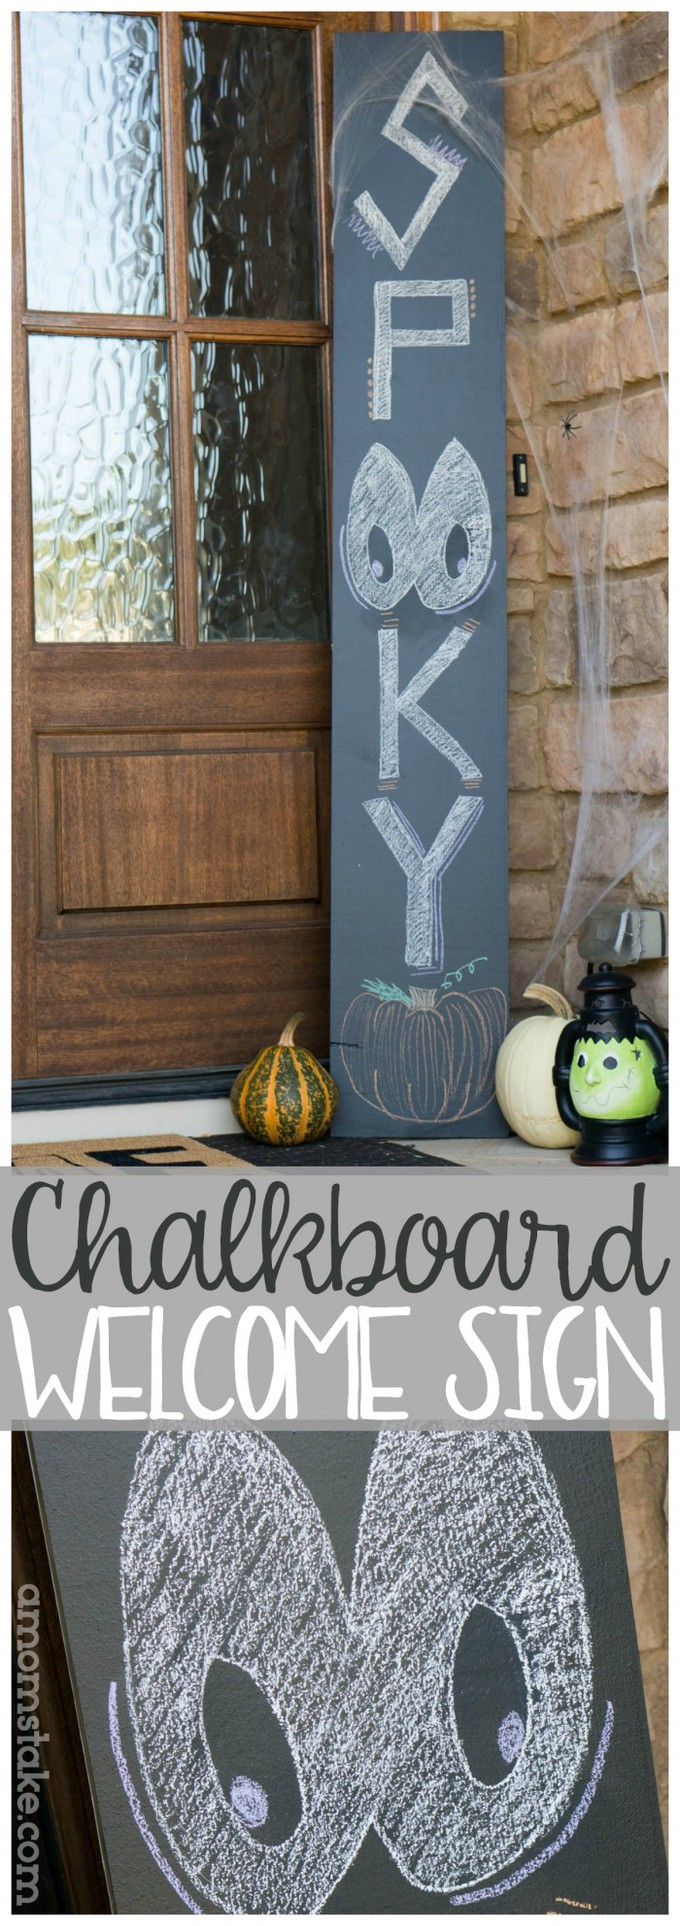 "Easy and inexpensive chalkboard welcome sign perfect for holidays like Christmas and Halloween with a friendly greeting to your guests. Personalize it with each season! Or make it double sided with a permanent ""welcome"" message on one side and customize chalkboard panel on the back. #holidays #diy #decorating #porch #decorations #halloween #fall #christmas"